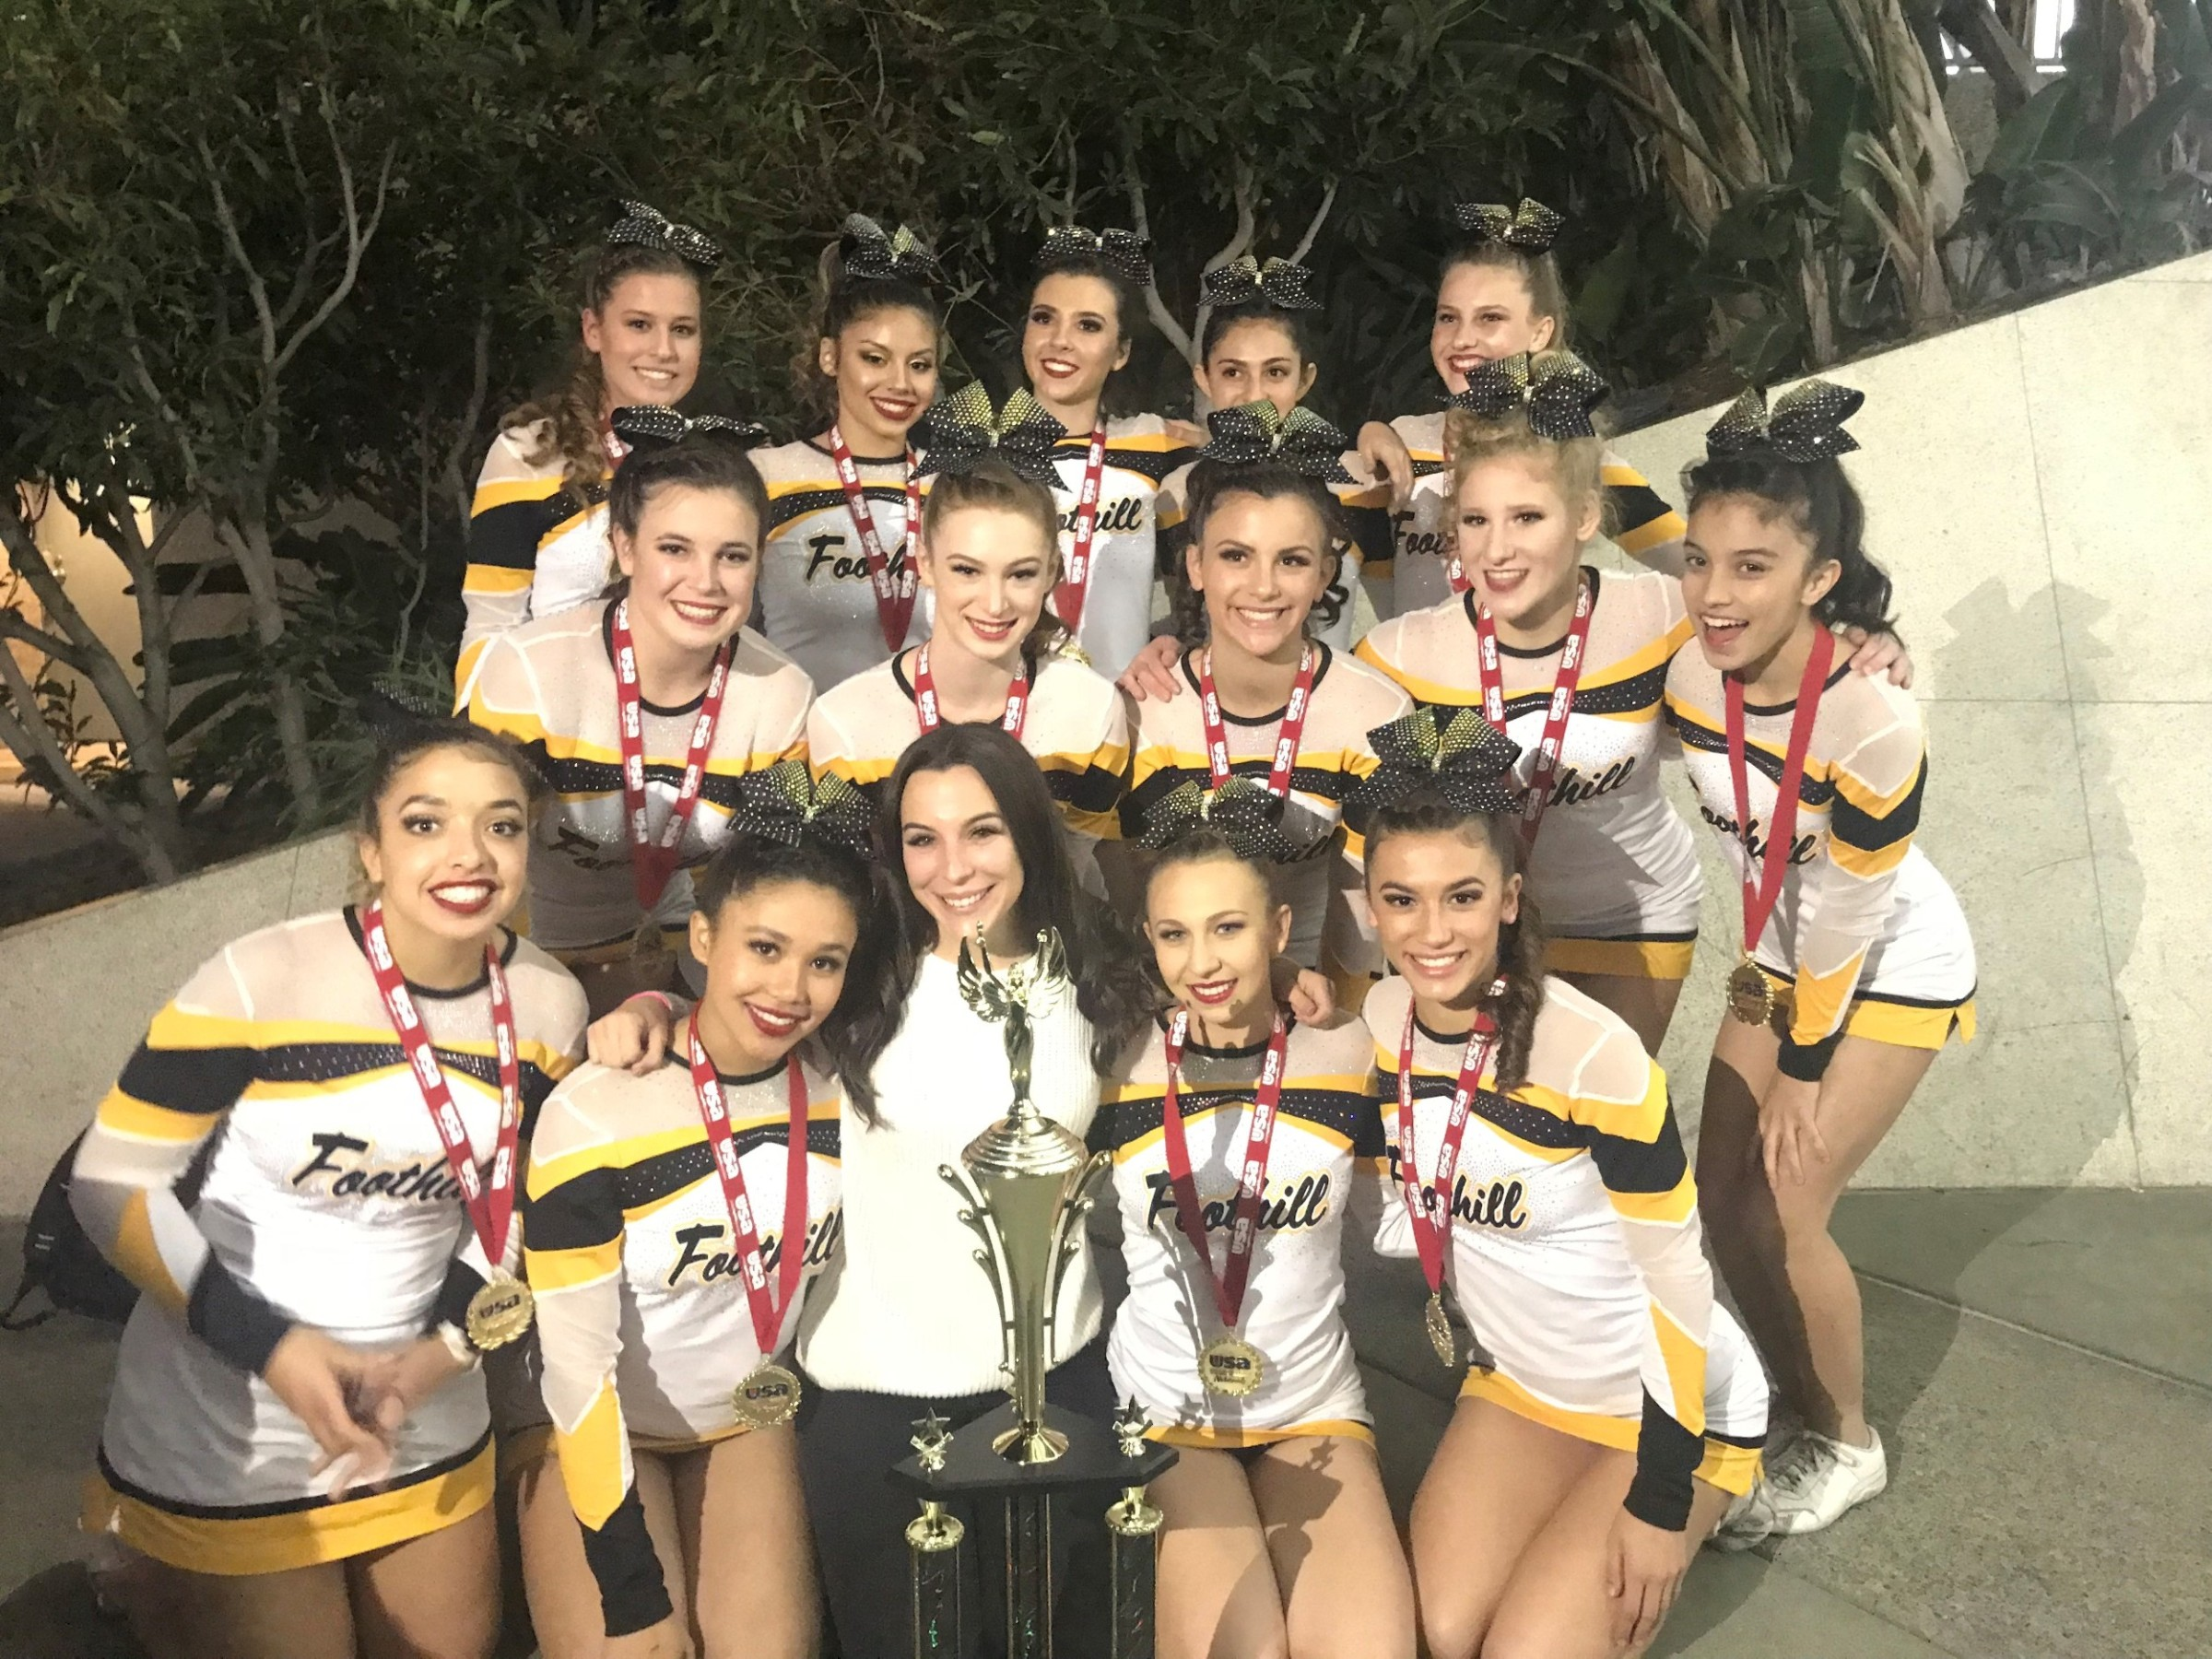 USA Spirit Nationals 2nd Place